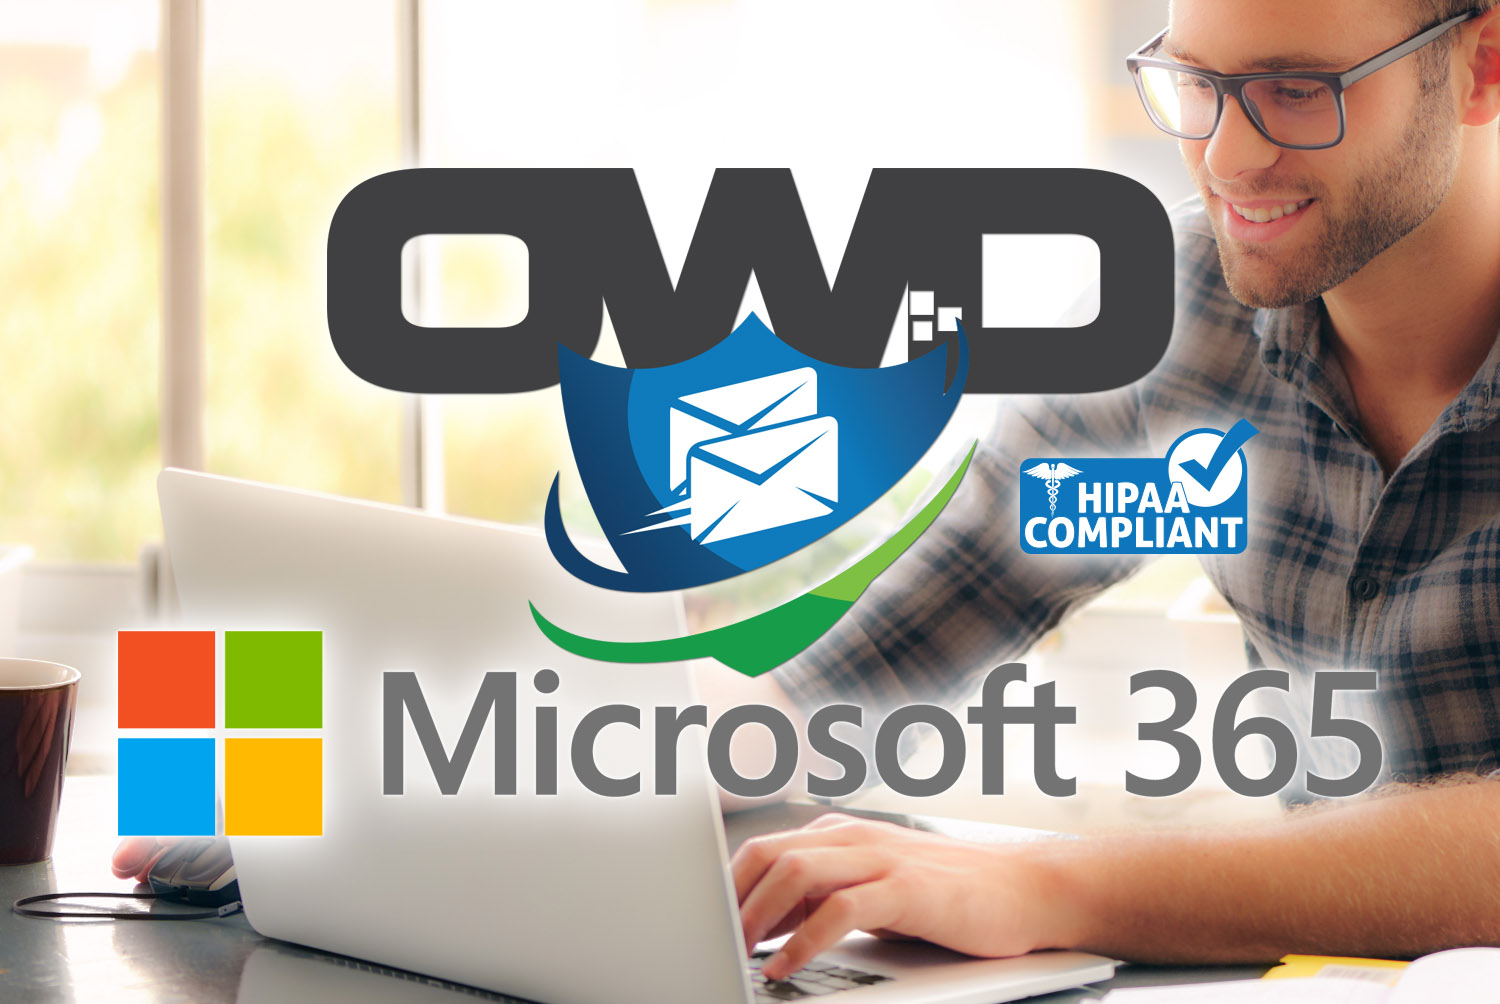 OCALA WEBSITE DESIGNS LOGO WITH MICROSOFT 365 LOGO